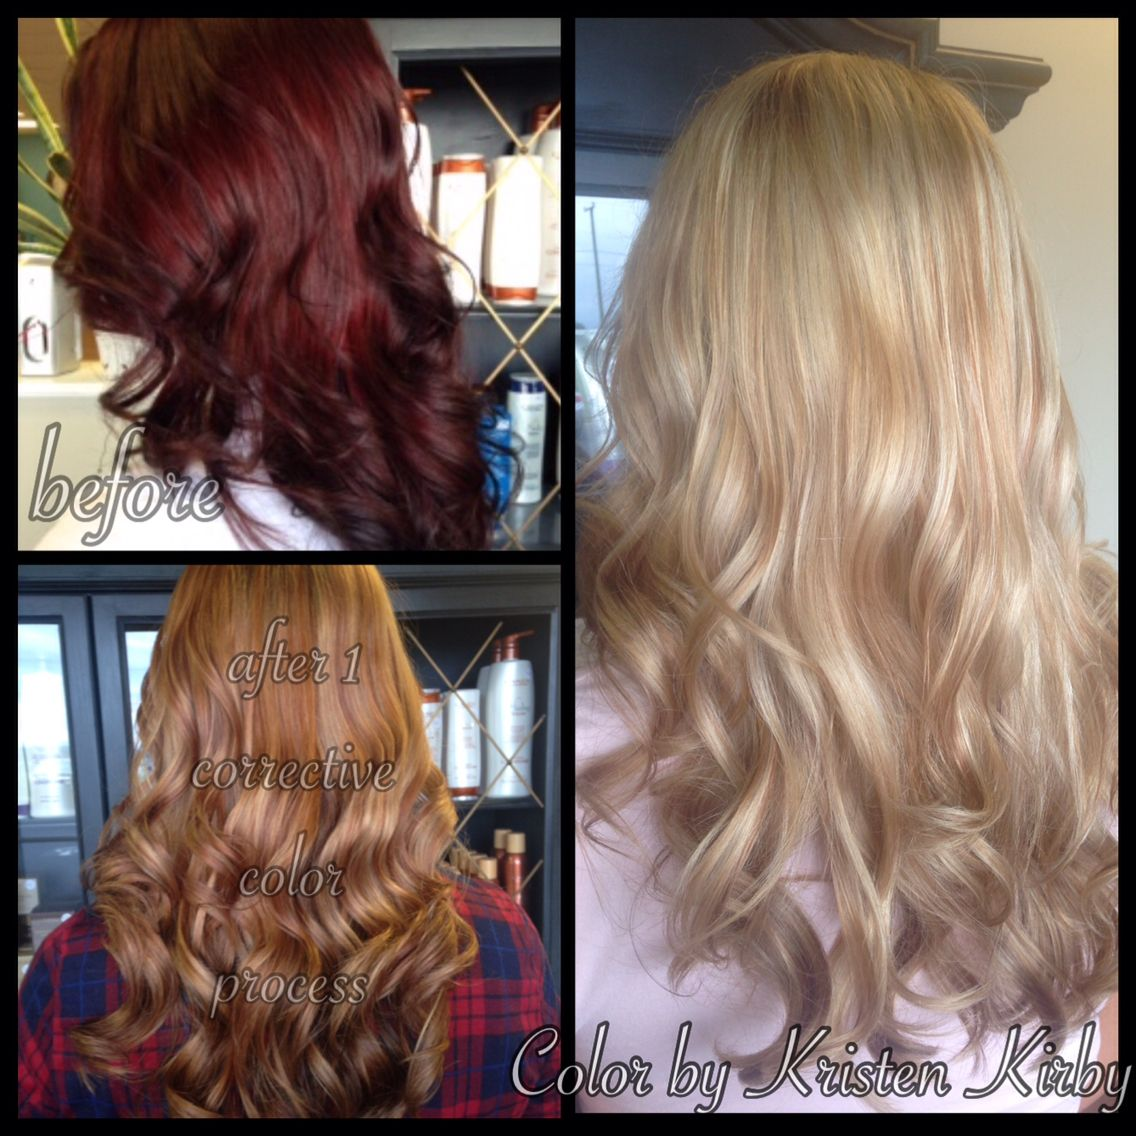 Color Correction From Rich Red To Blonde Using L Anza Healing